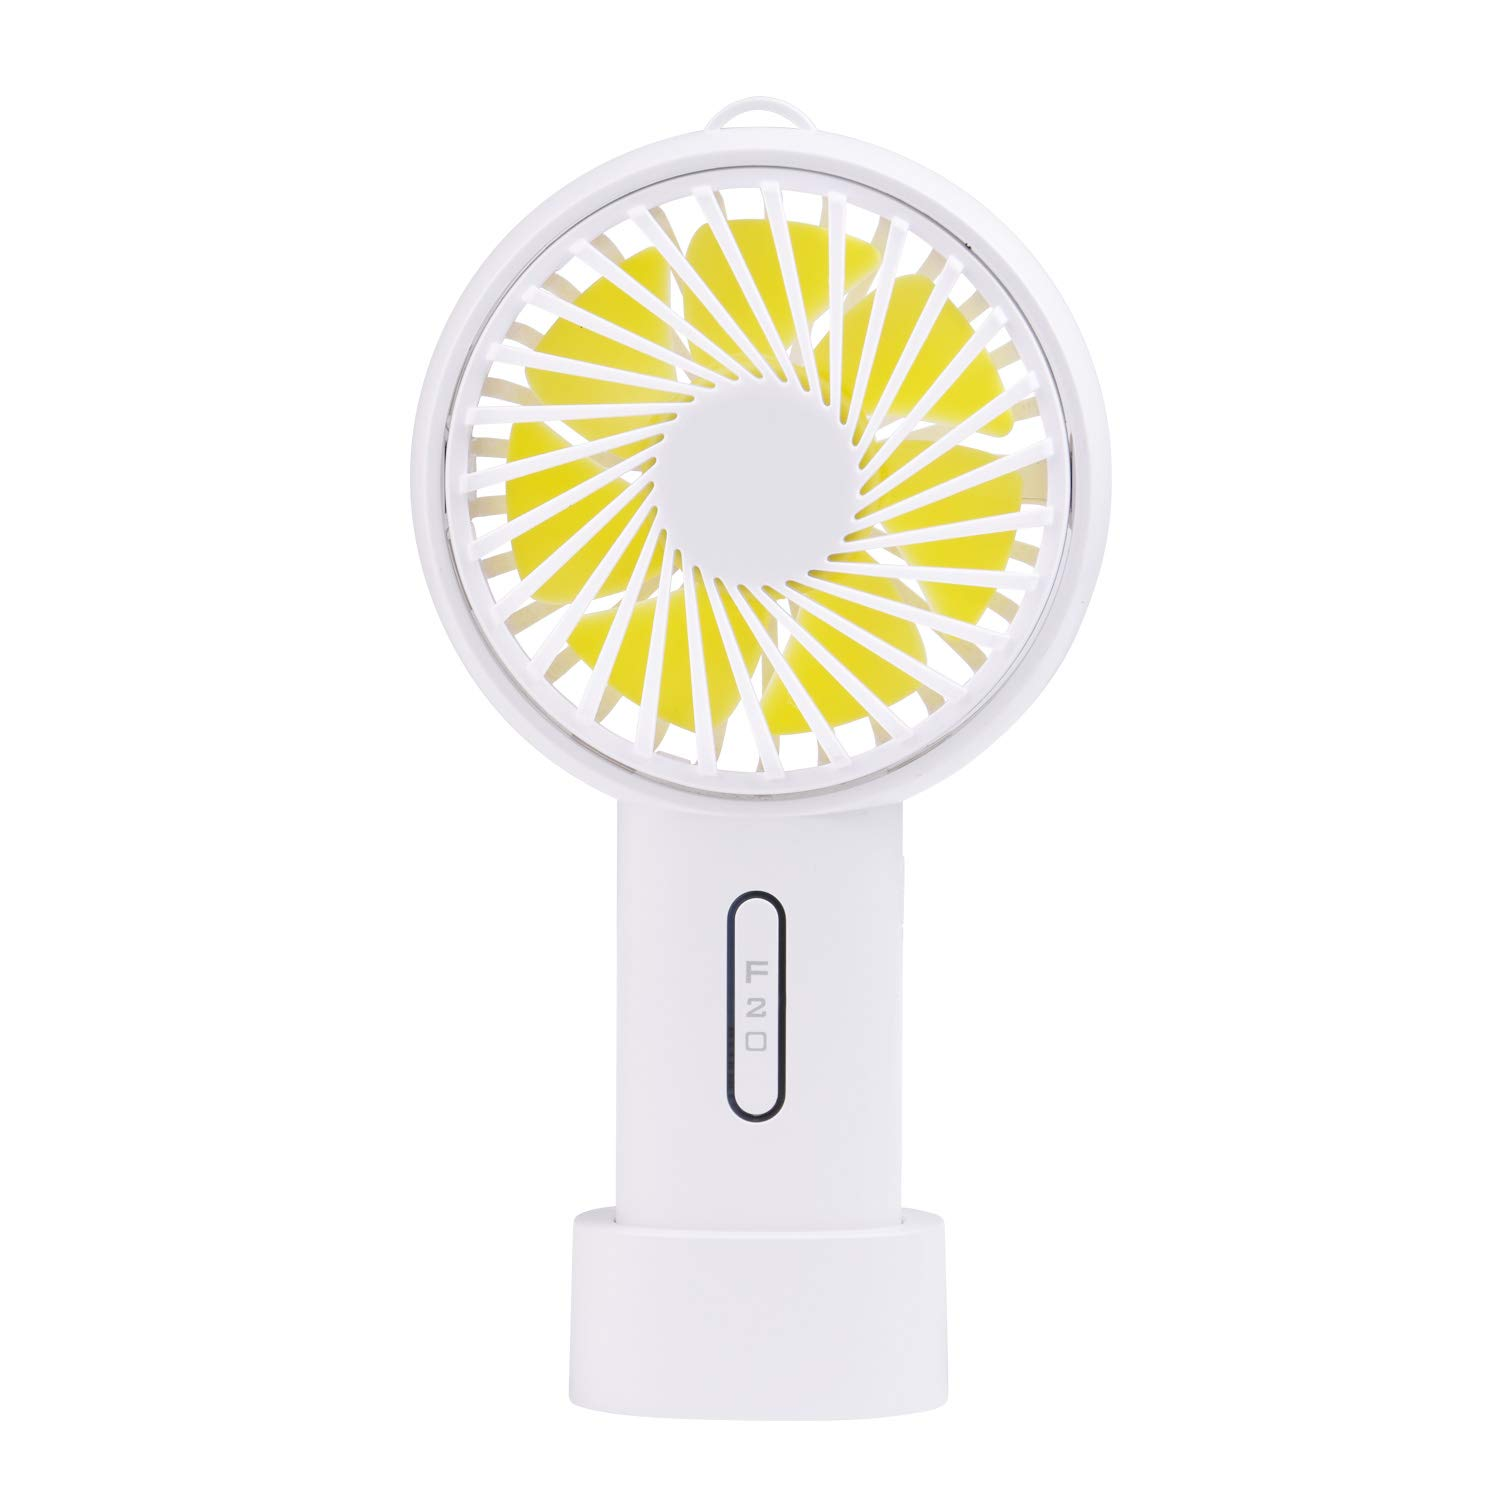 Mini Handhold Fan, l'aise vie 2600mAh Battery Personal Fan USB Rechargeable Electric Fan with Adjustable 3 Speeds Suitable for Home and Travel (White)